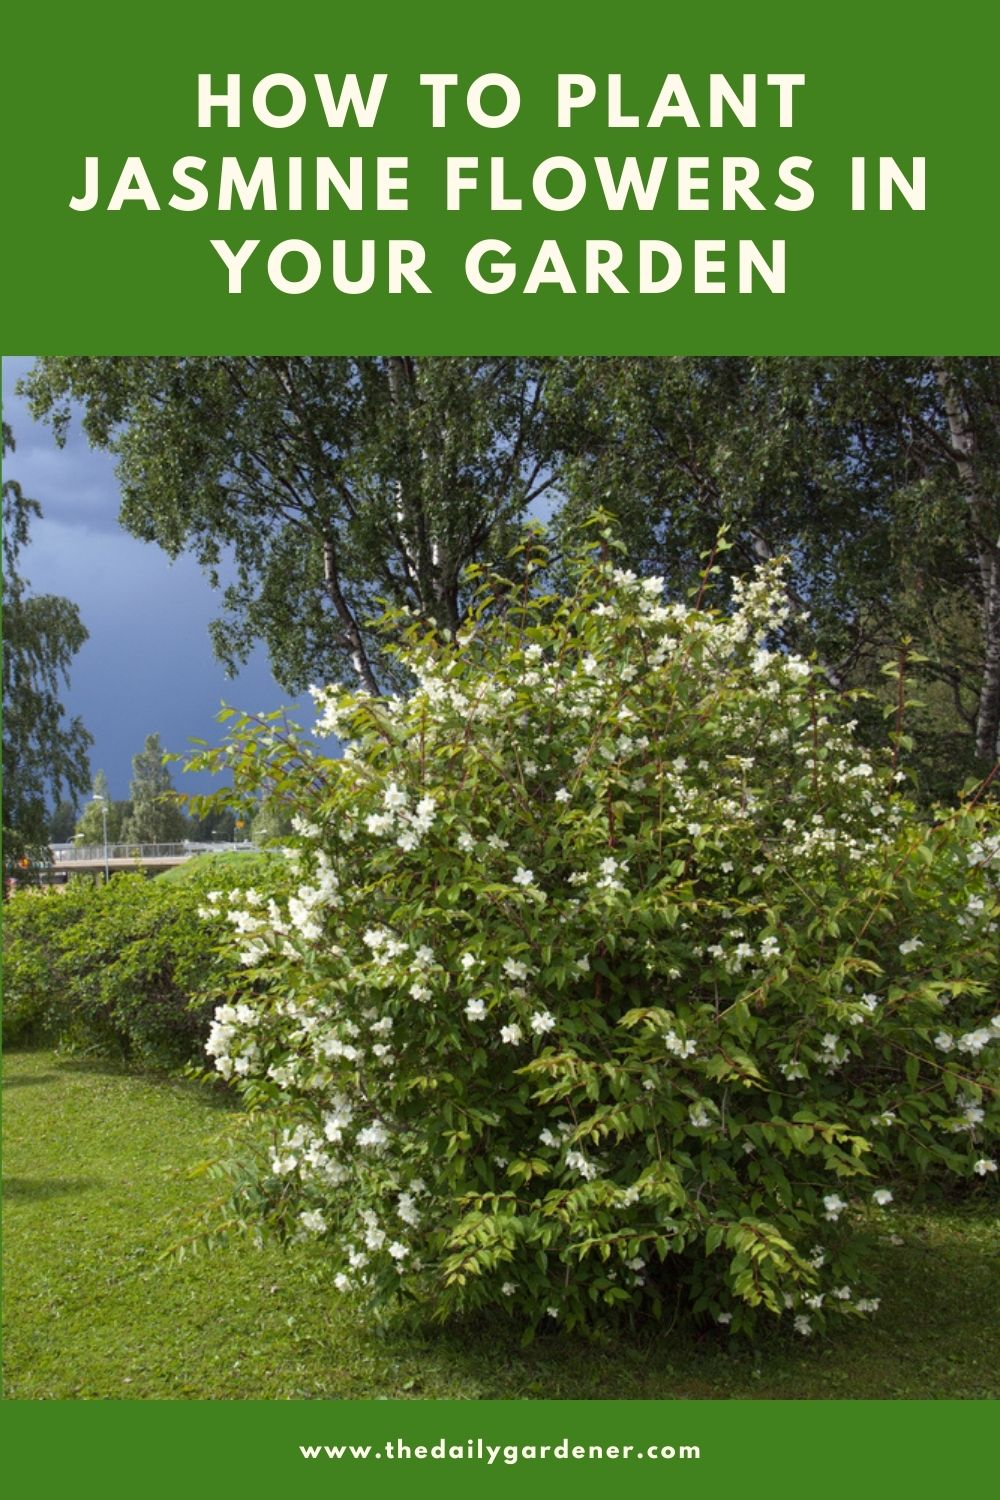 How to Plant Jasmine Flowers in Your Garden (Tricks to Care!) 1